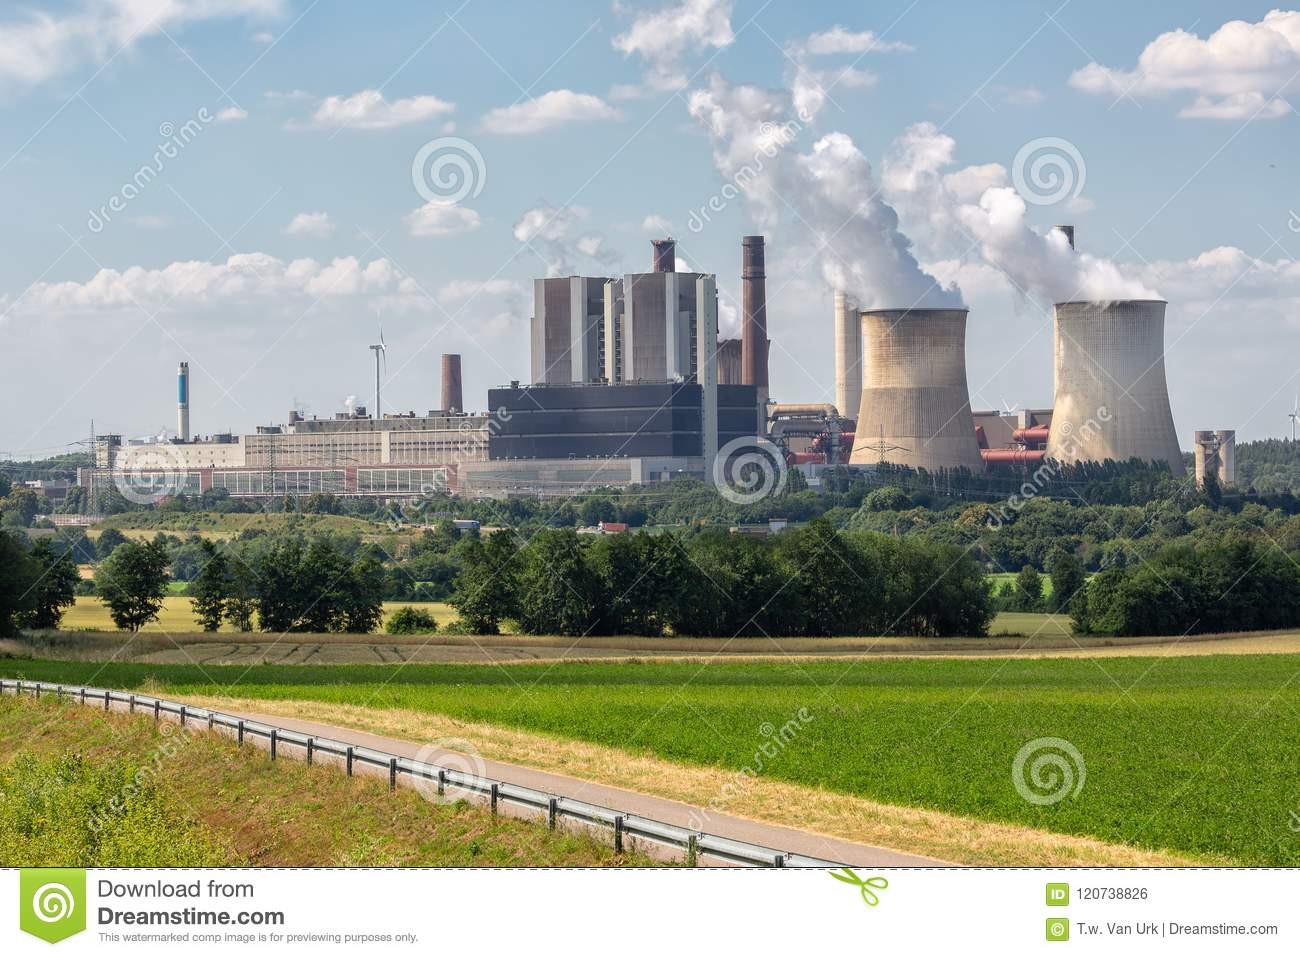 Coal-fired power plant near lignite mine Inden in Germany